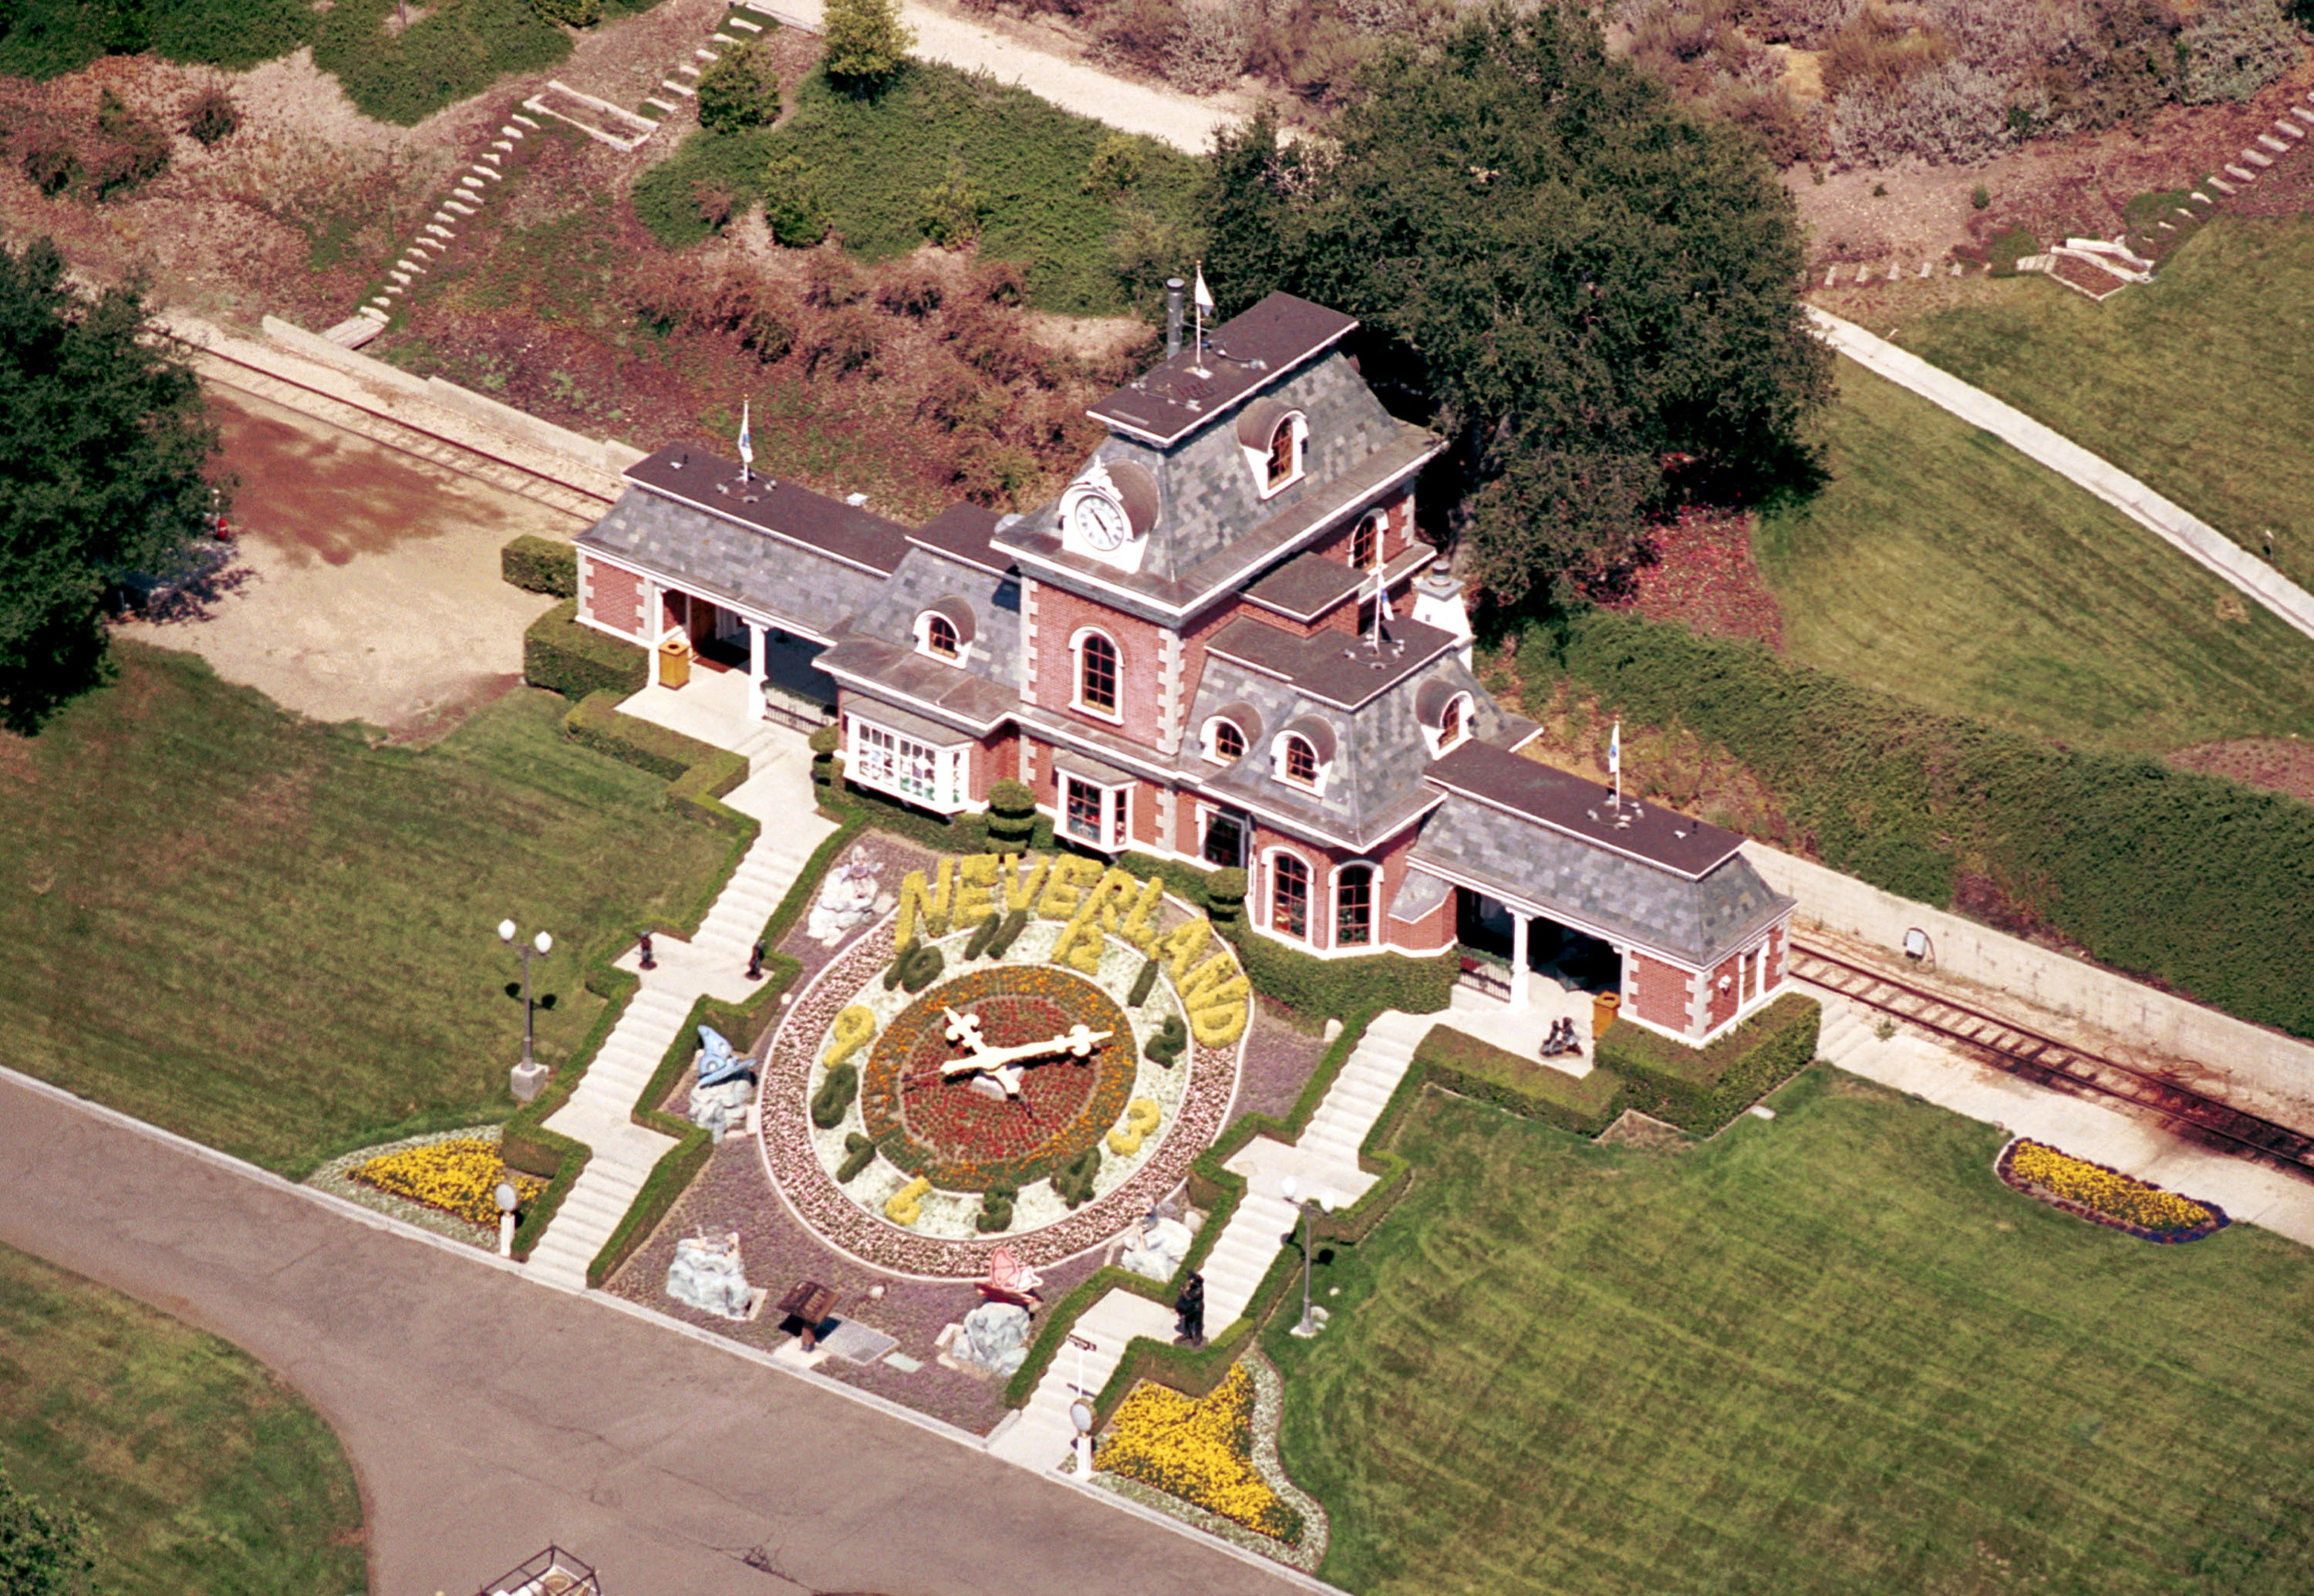 An aerial view of the Neverland Valley Ranch of singer Michael Jackson June 25, 2001, in Santa Ynez, CA. (Getty Images)